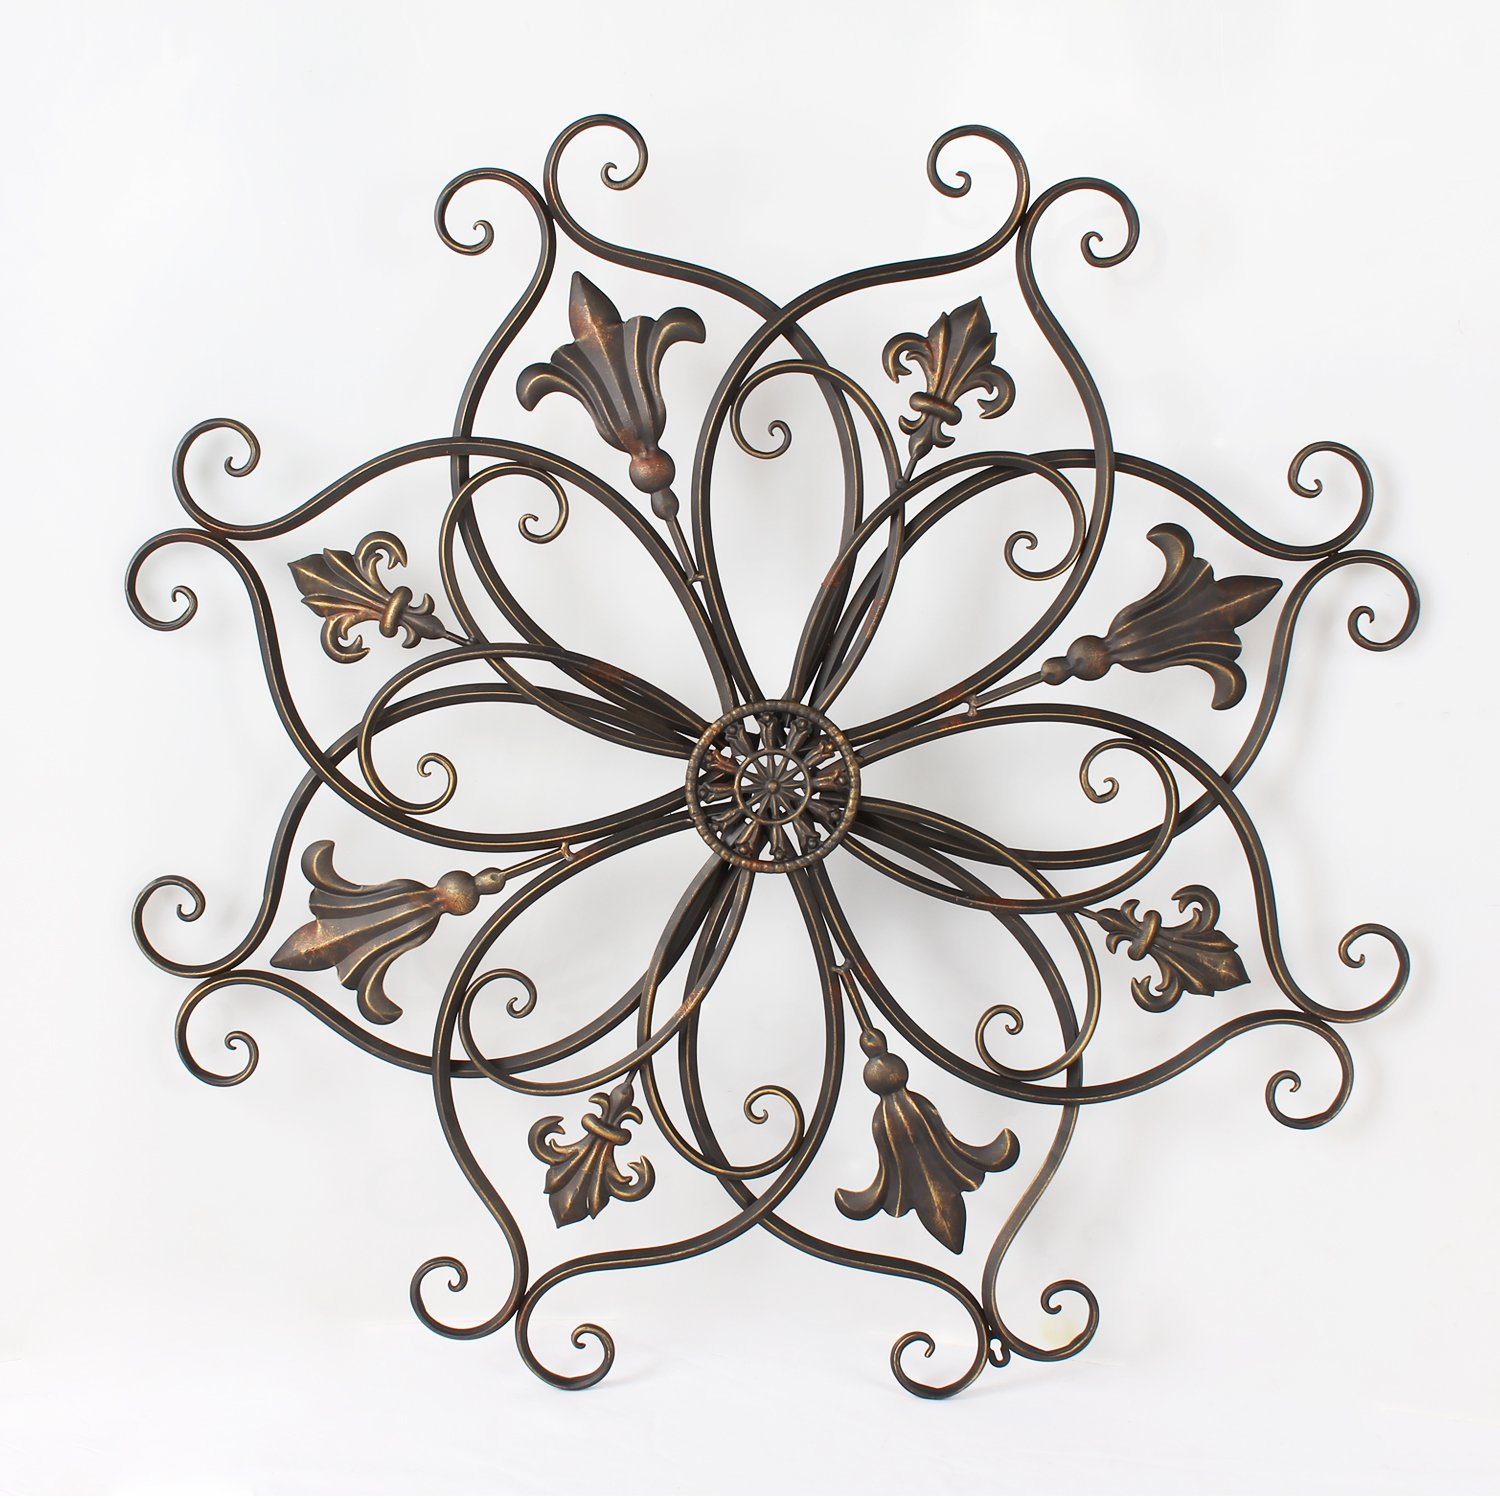 Adeco DN0011 Decorative Bronze-Color Iron Wall Hanging Decor Widget, Round Fleur-De-Lis Starburst Fleur De Lis Design, Bronze by Adeco